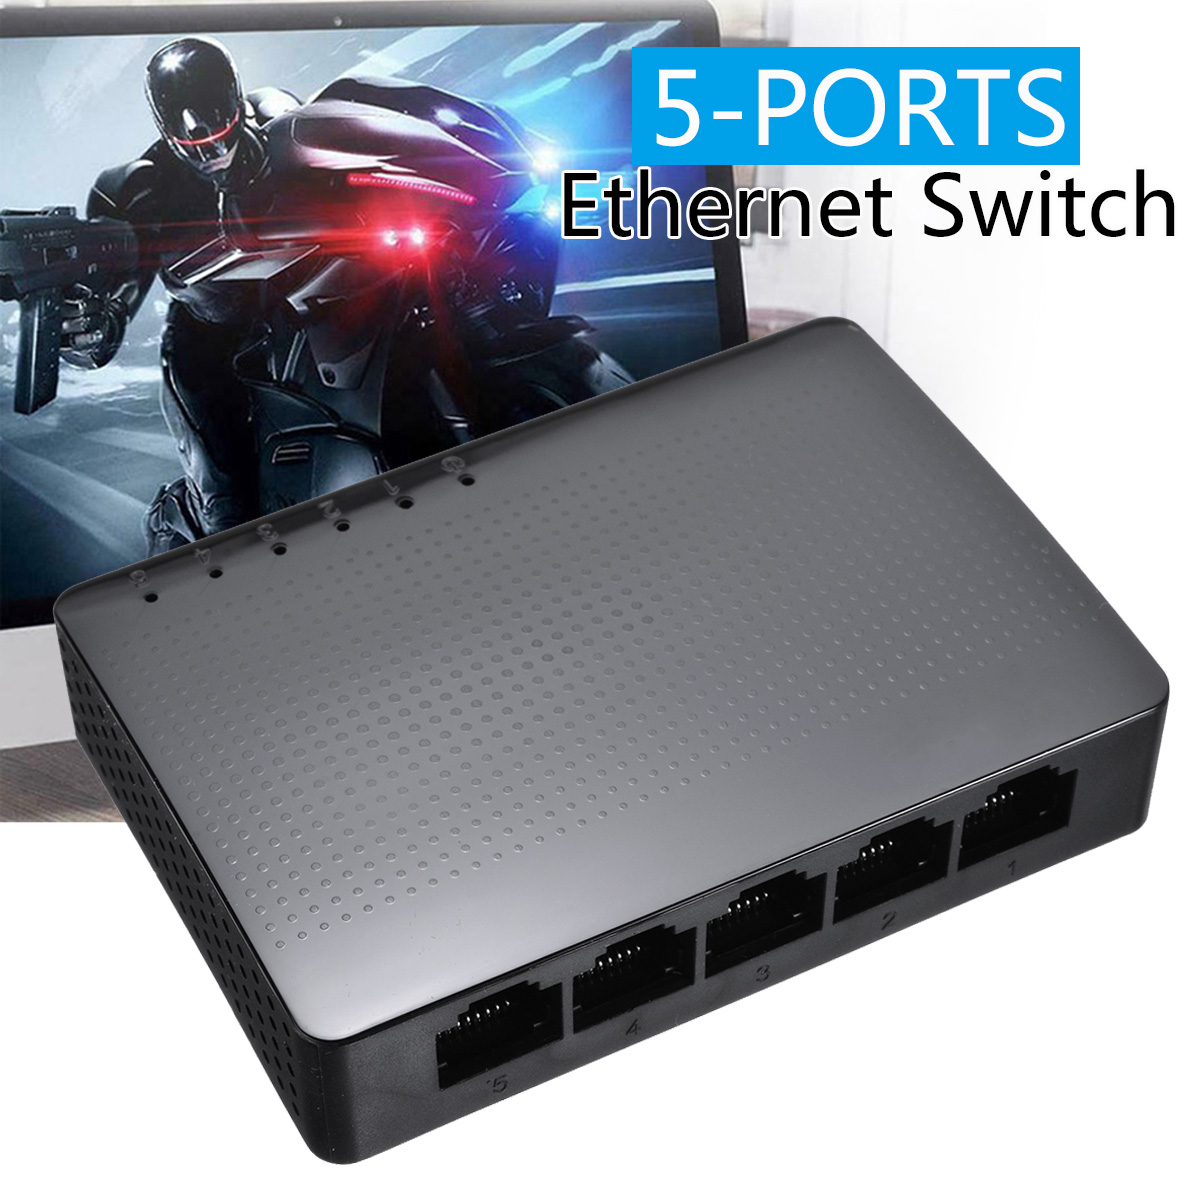 High Quality Ten-da LAN Hub SG105 5-port Desktop Gigabit Network Switch Ethernet Switches Wireless Router 1000M US Power Adapter